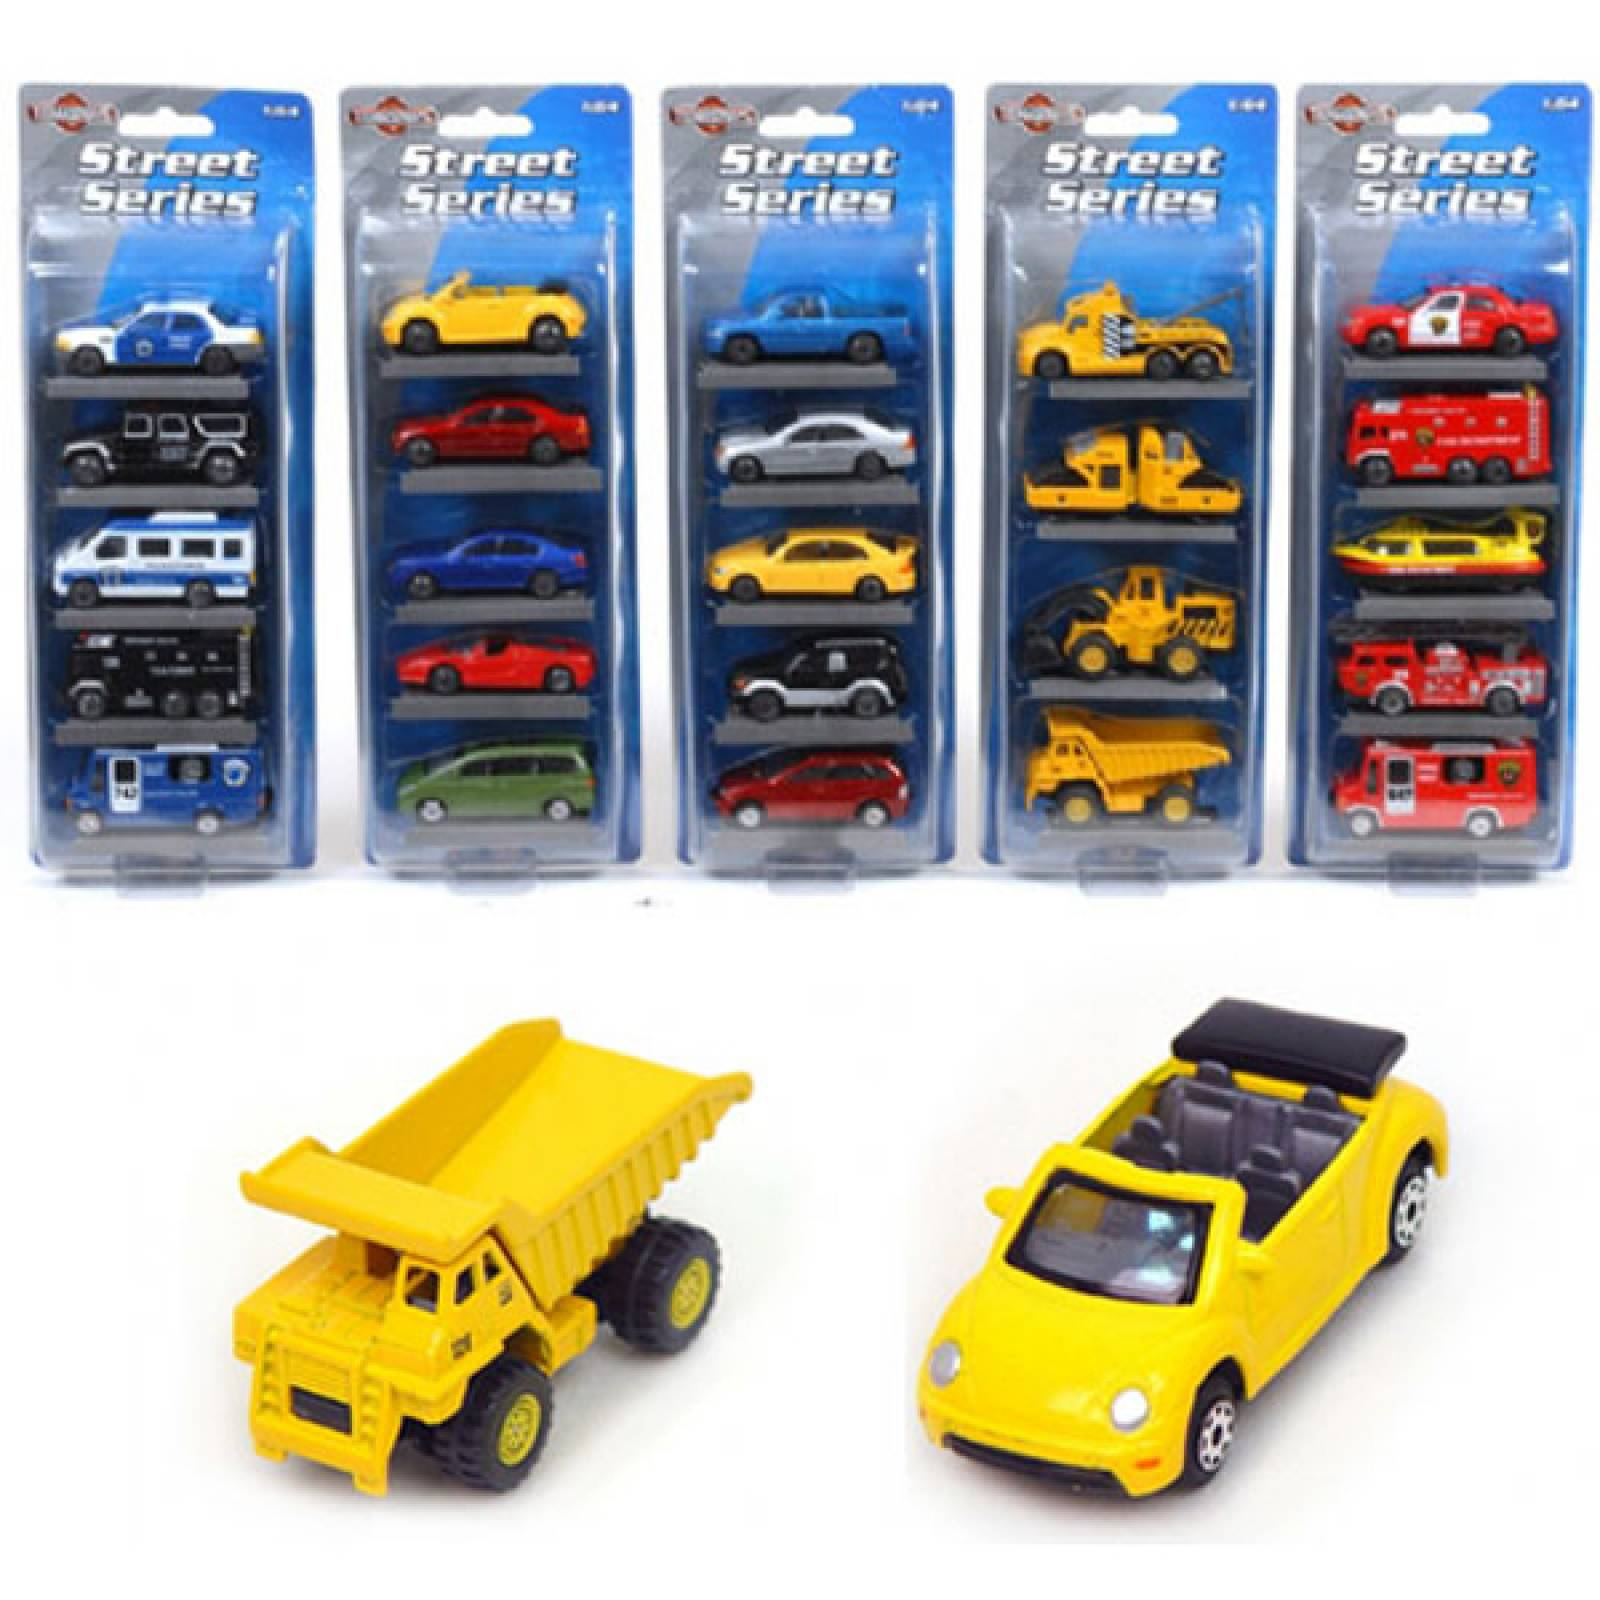 Teamsterz Street Series Diecast Set of 5 vehicles